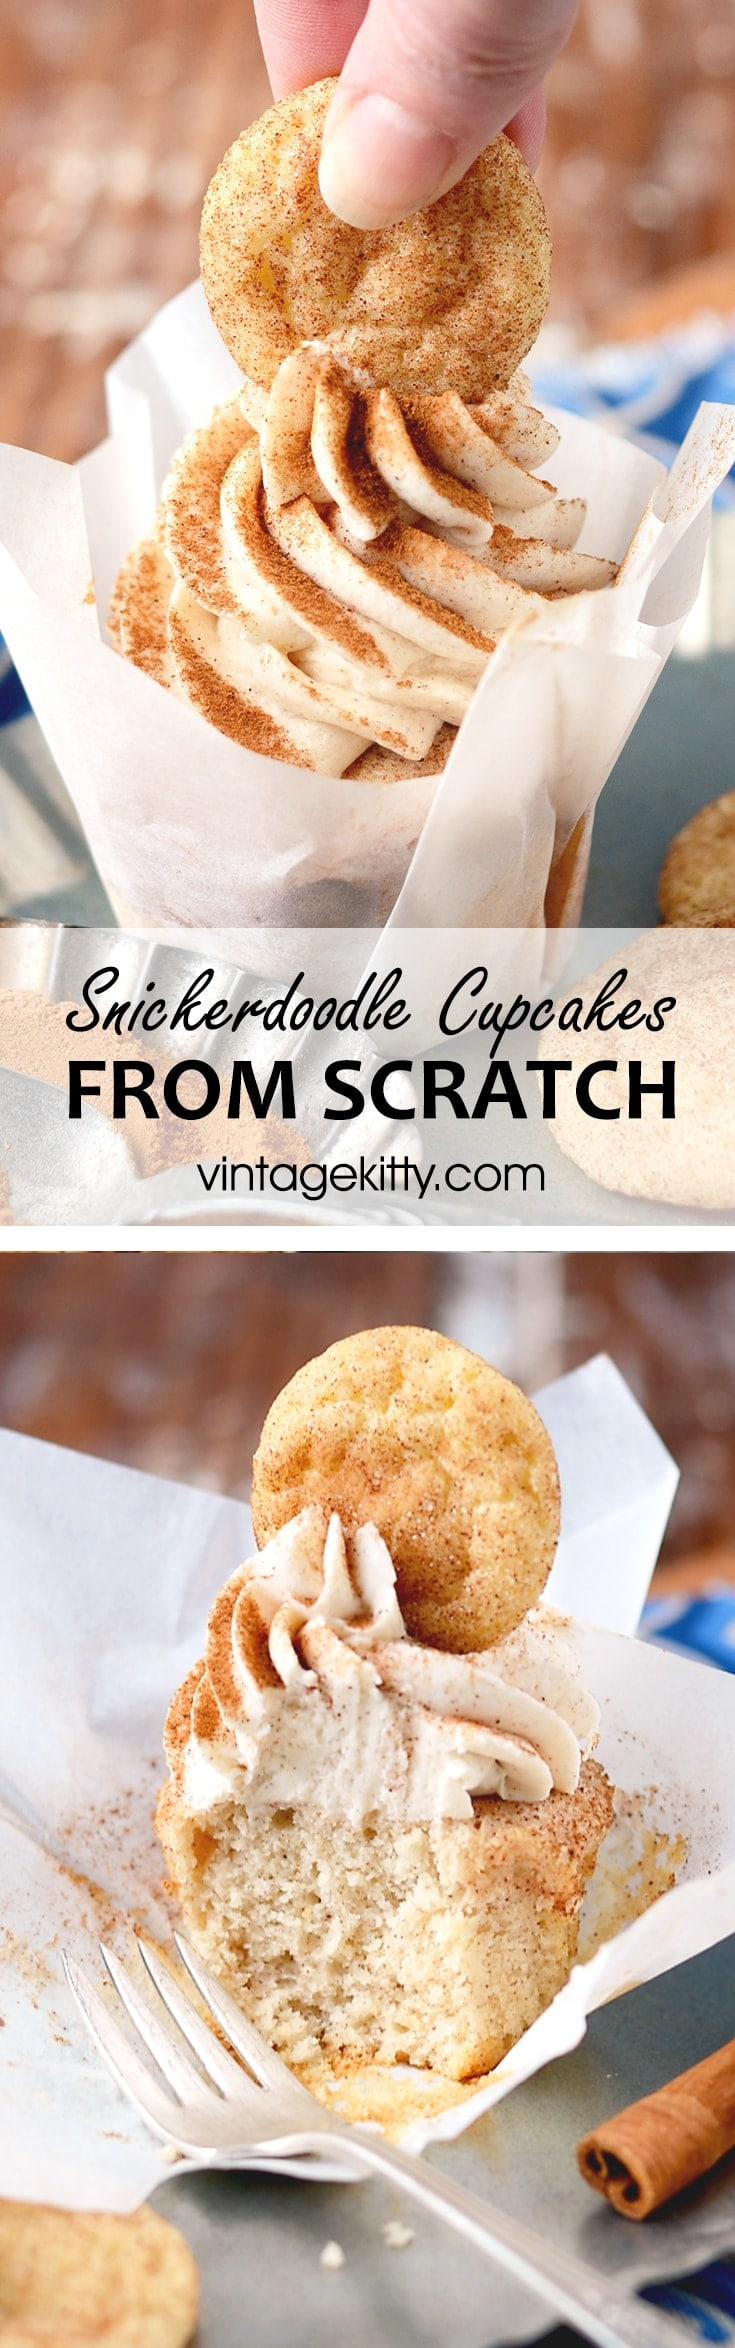 Cinnamon wins the day with these beautiful cookie topped Snickerdoodle Cupcakes! Just in time to wish vintagekitty.com a happy birthday!